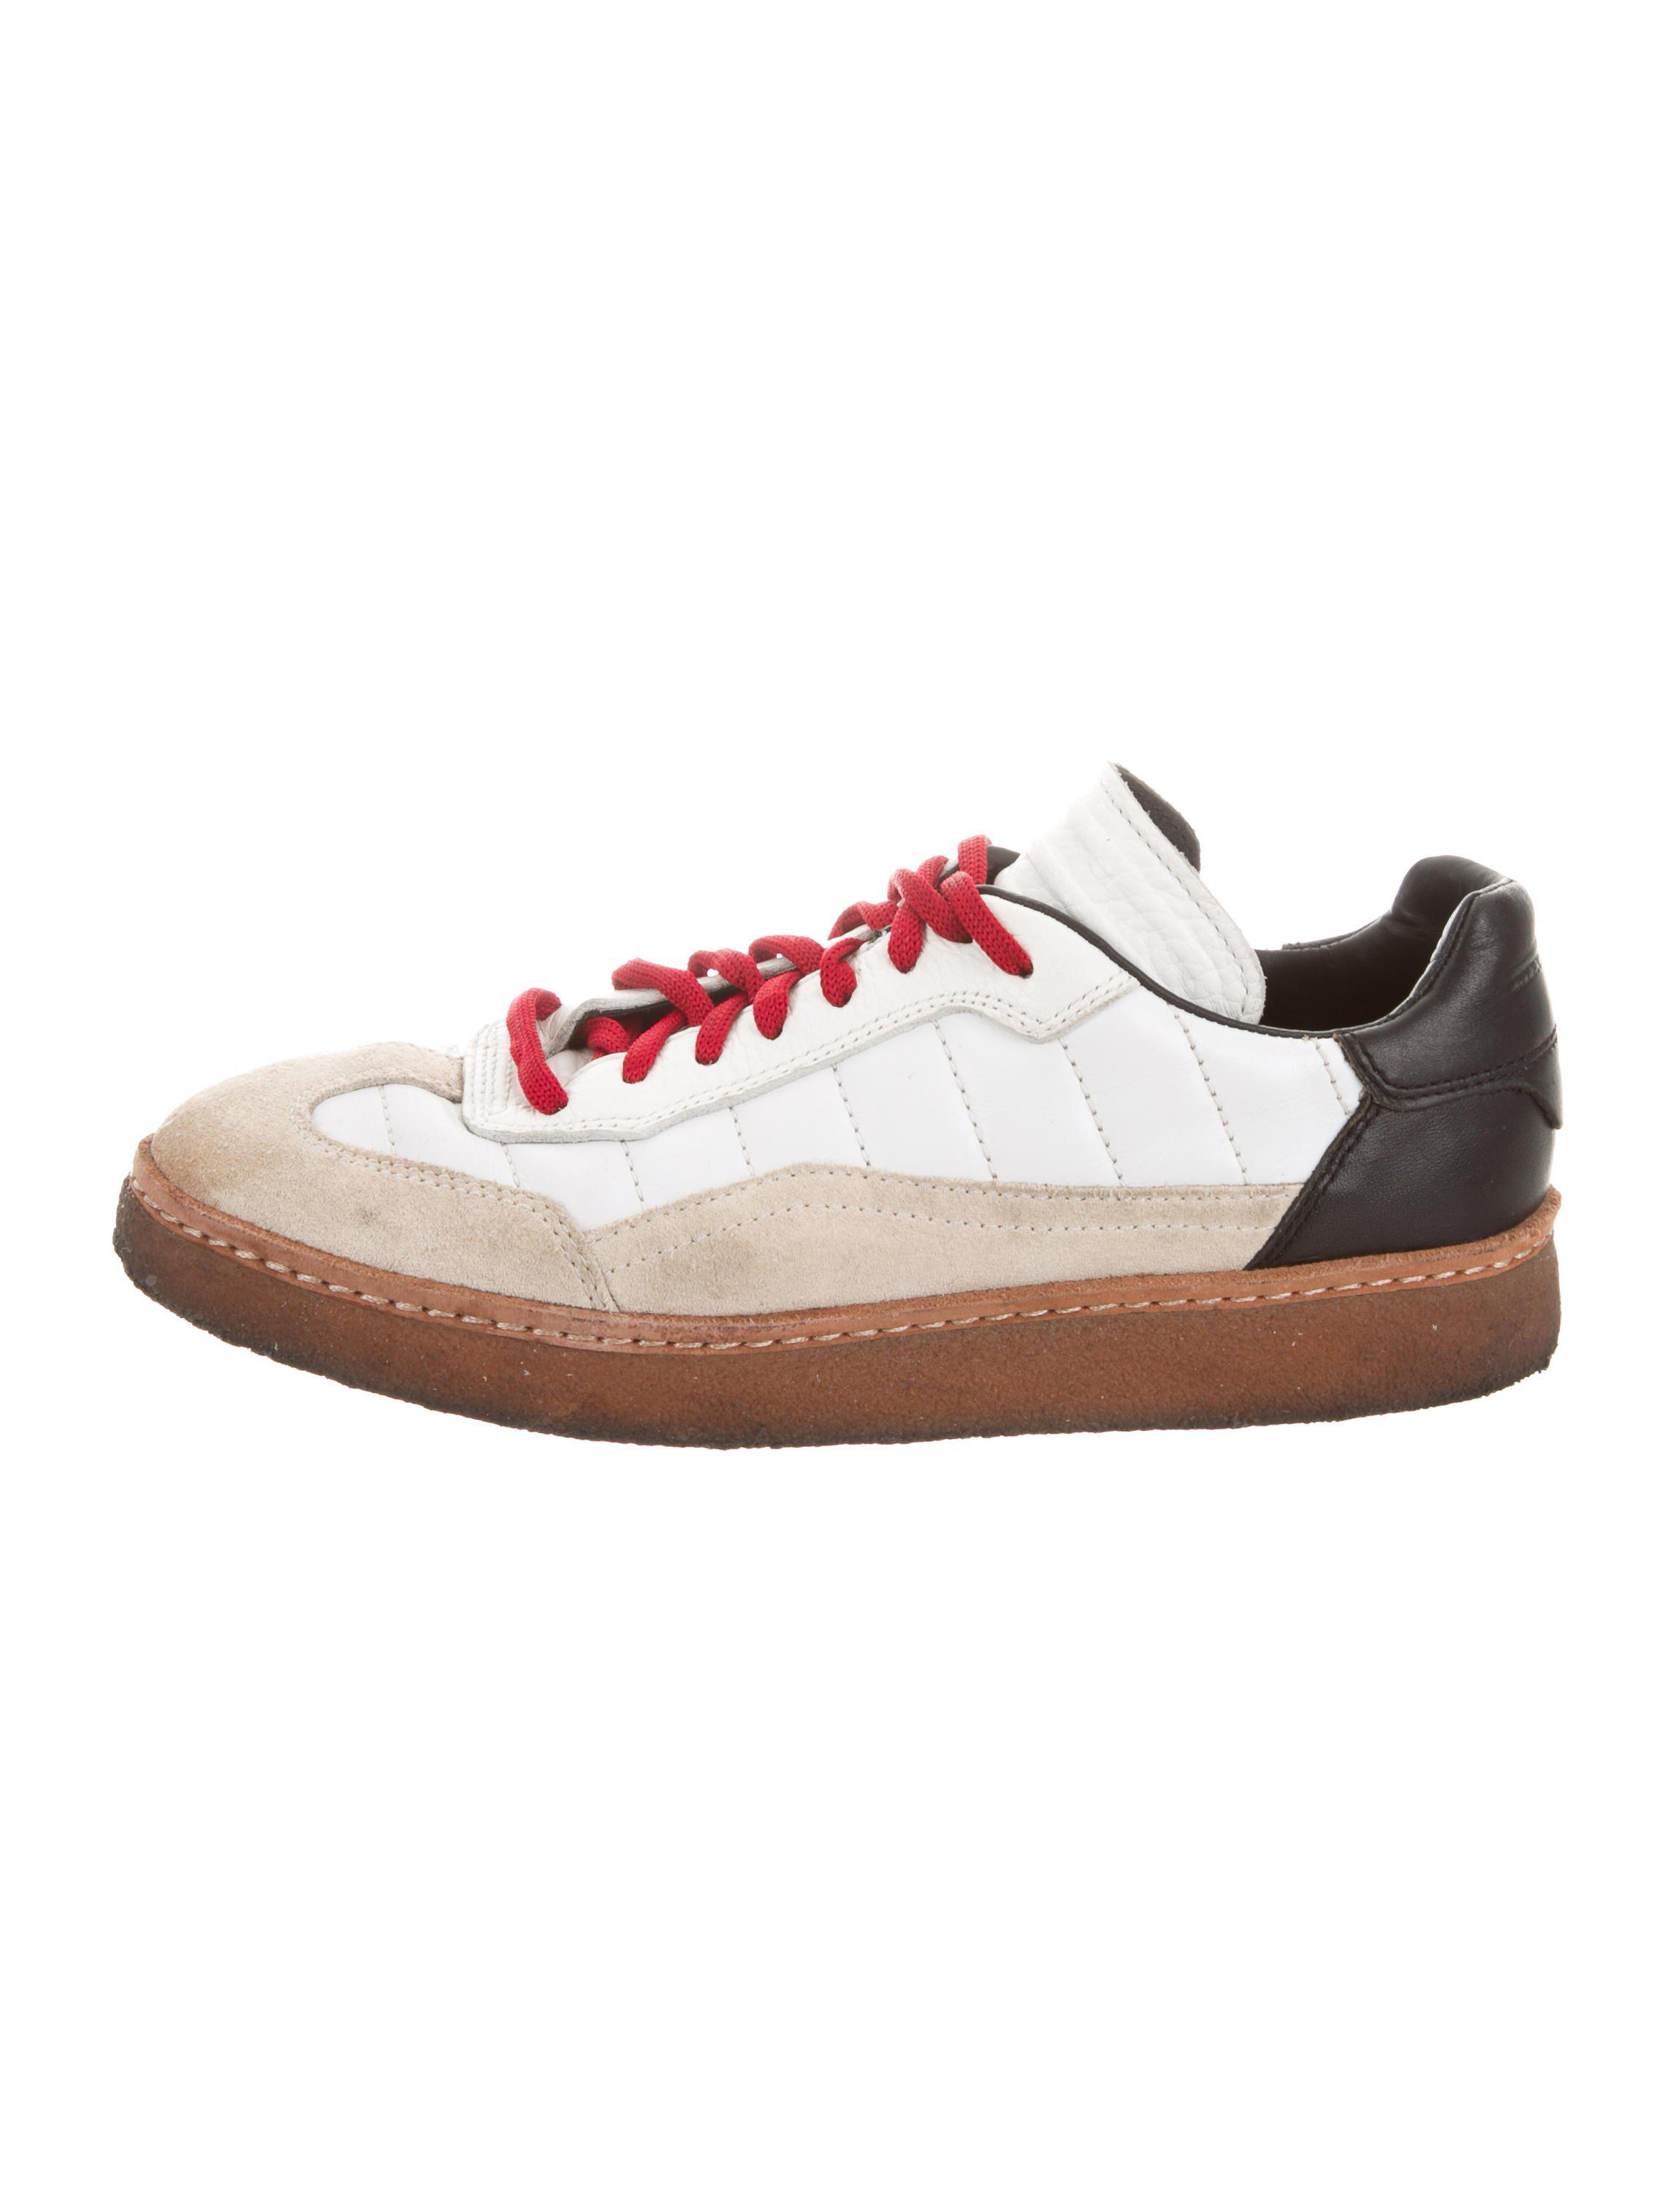 e6b8f797ee4 Lyst - Alexander Wang Leather Low Top  Sneakers in White